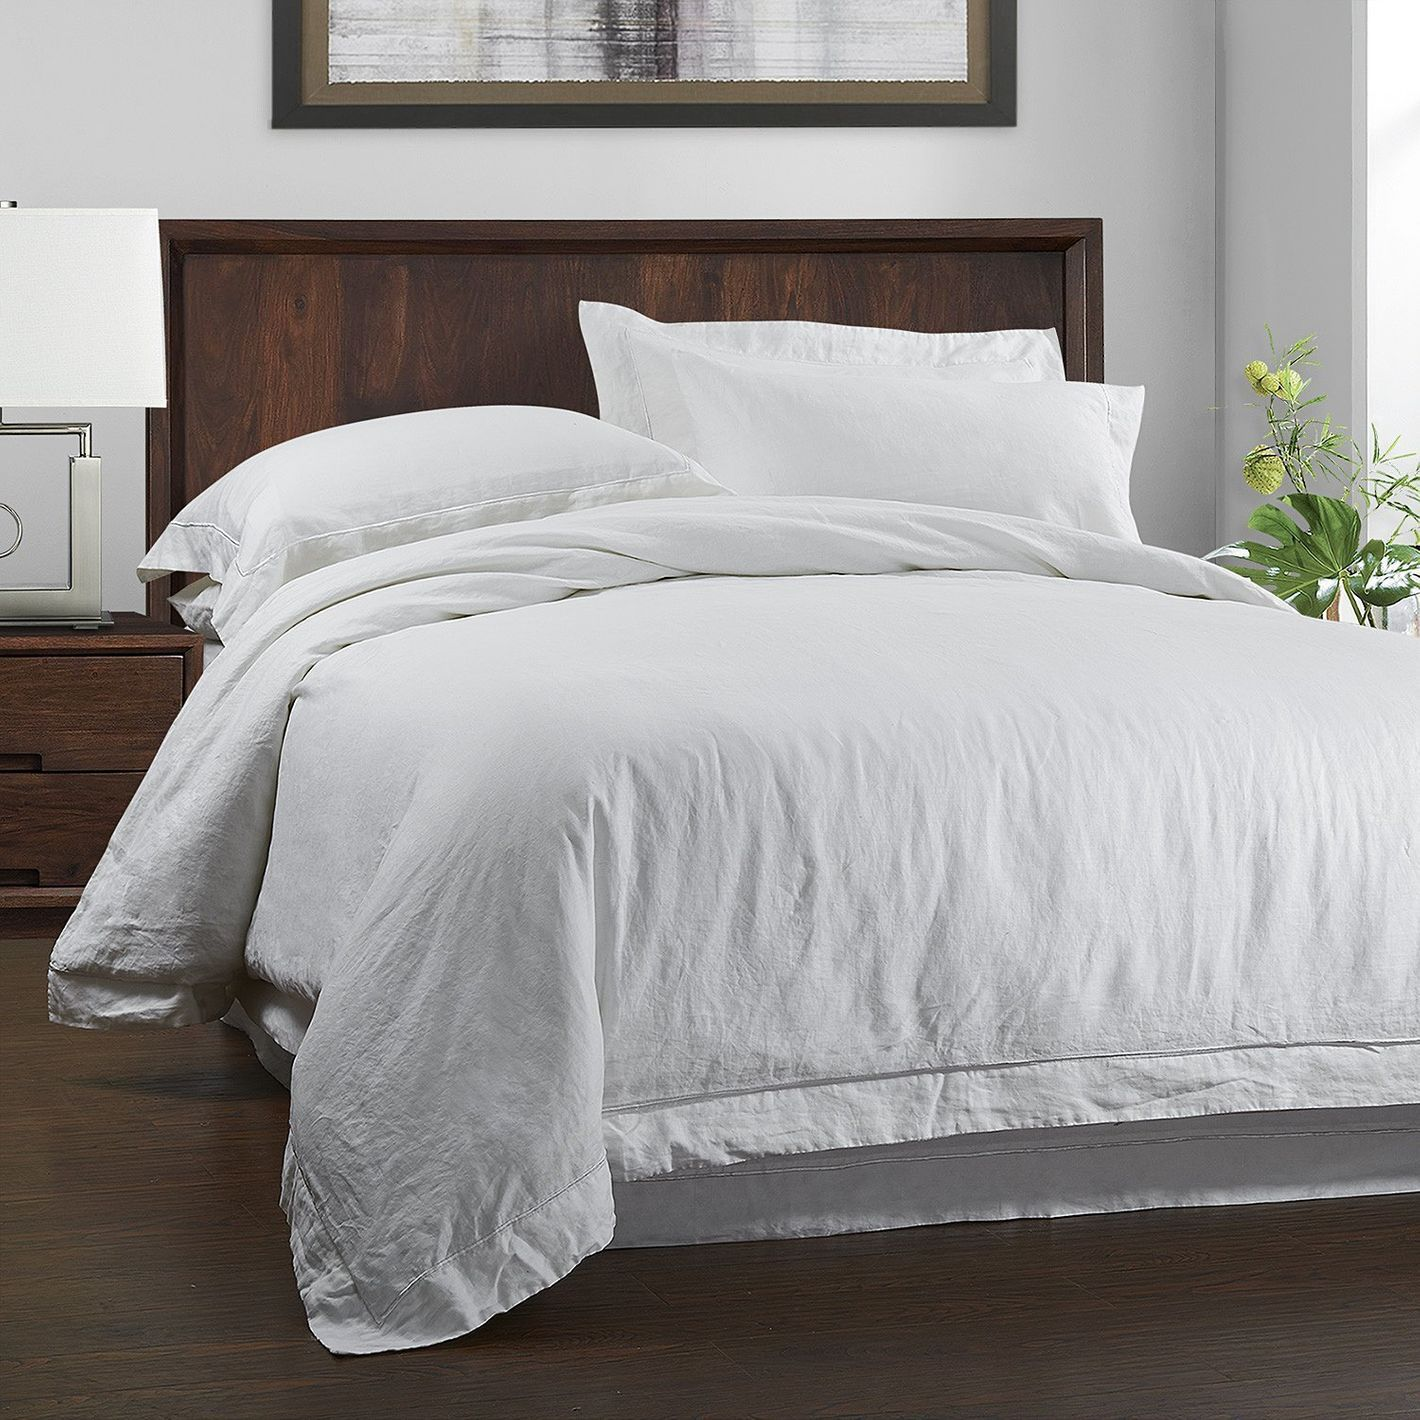 Simple Once 100 Linen Duvet Cover Set 3 Piece Solid Wash